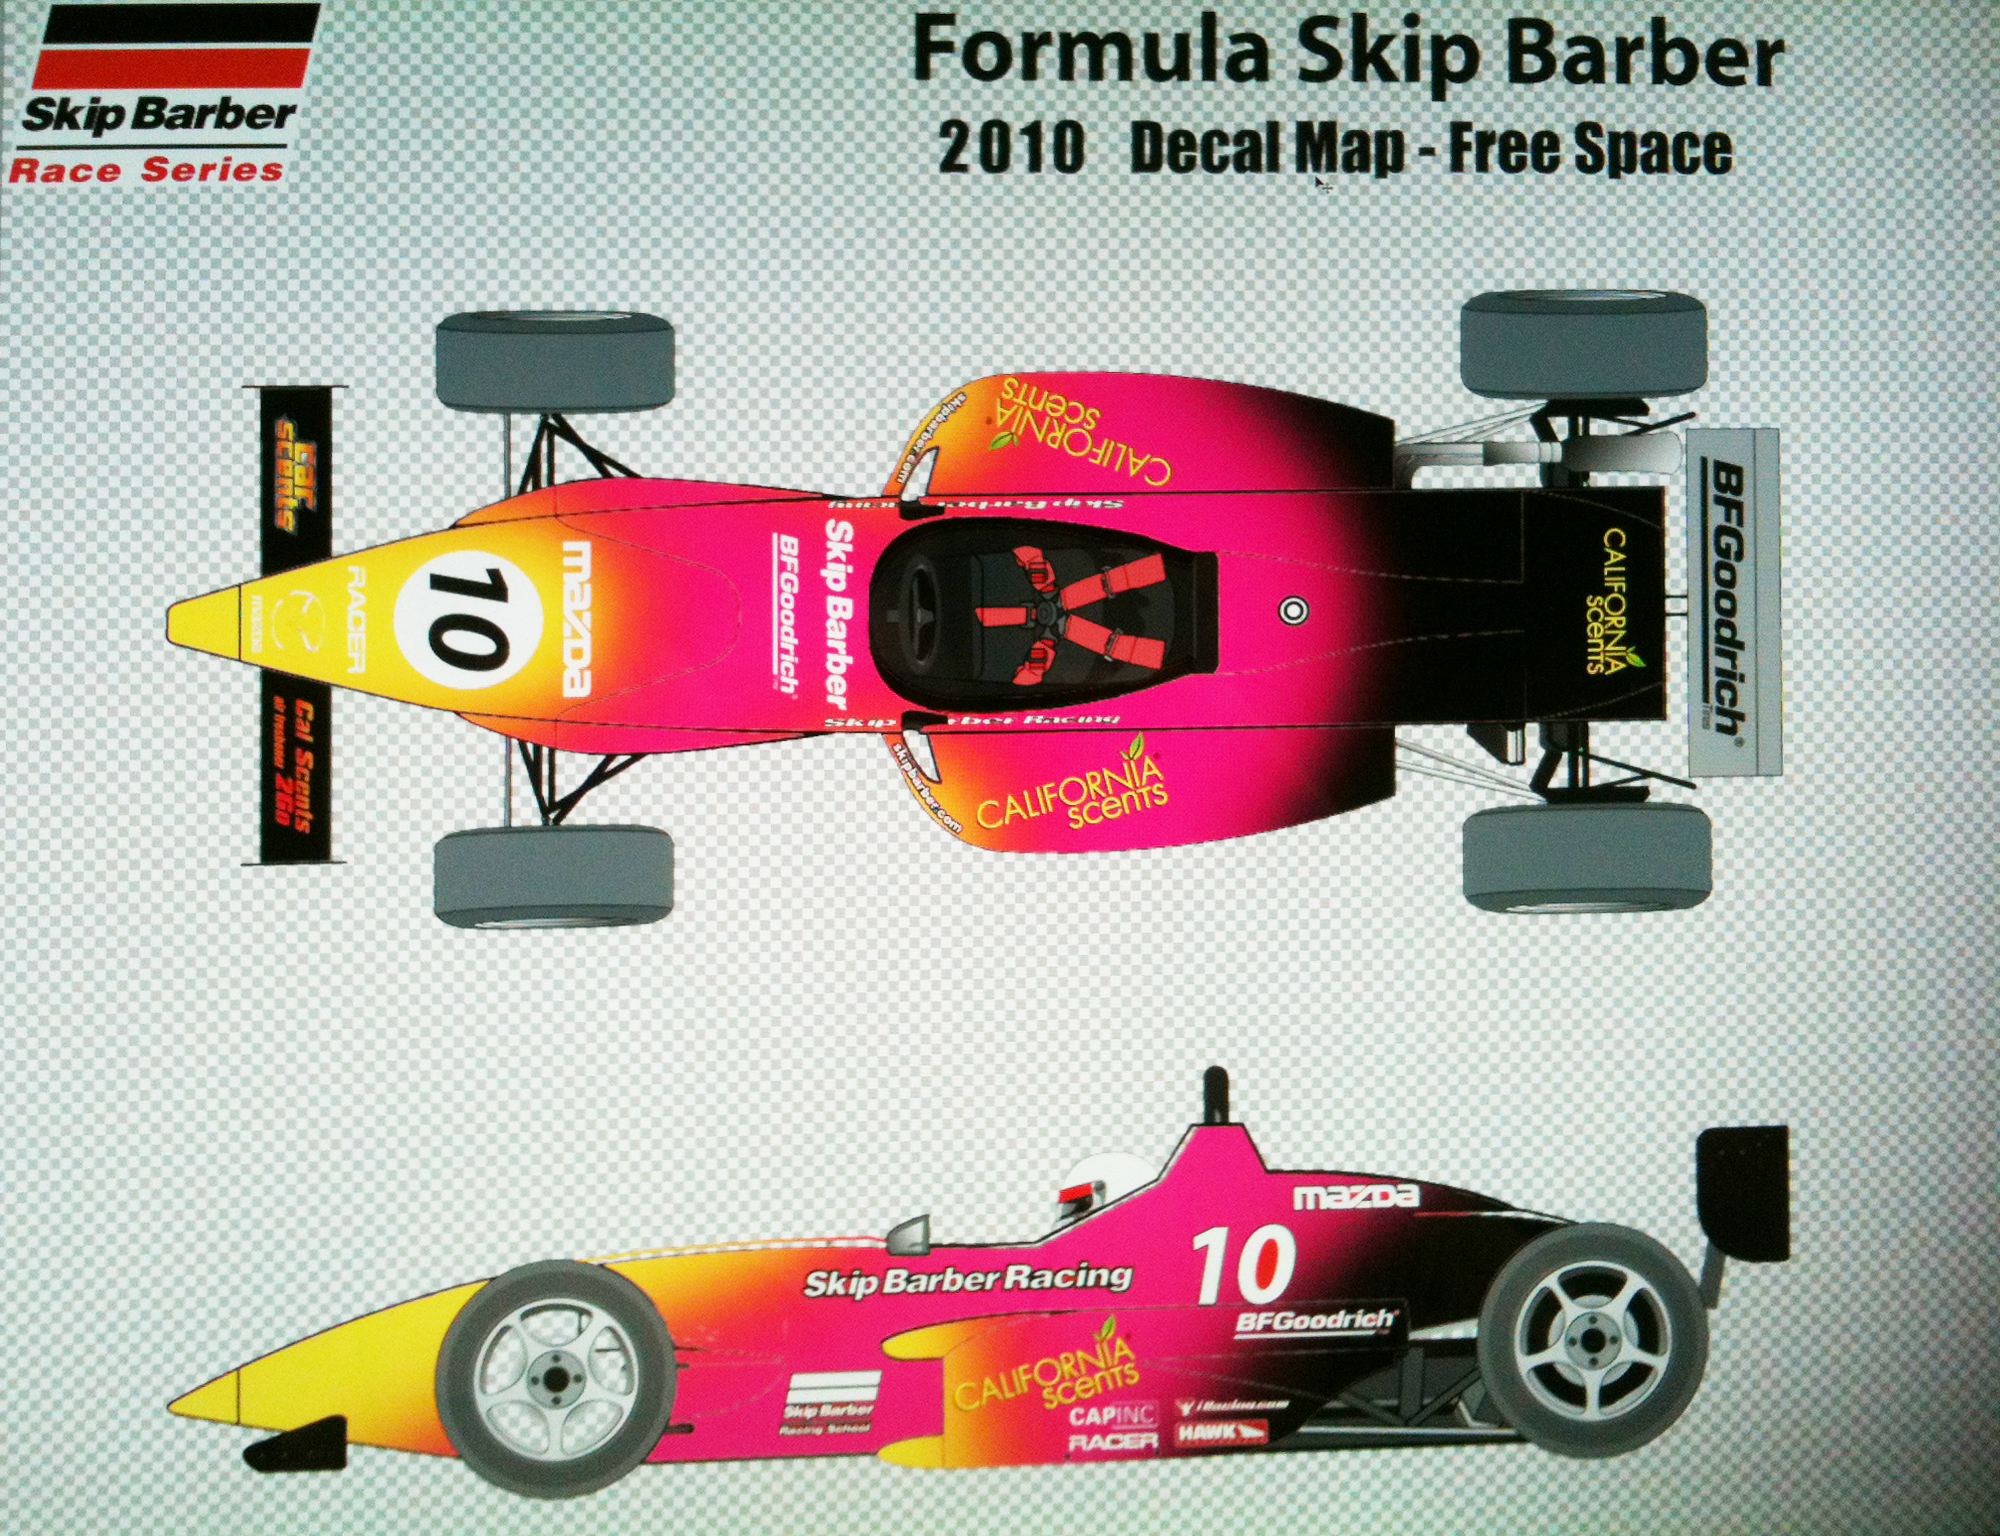 Concept Formula 1 illustration auto wrap for  California Scents trade show Booth in Vegas